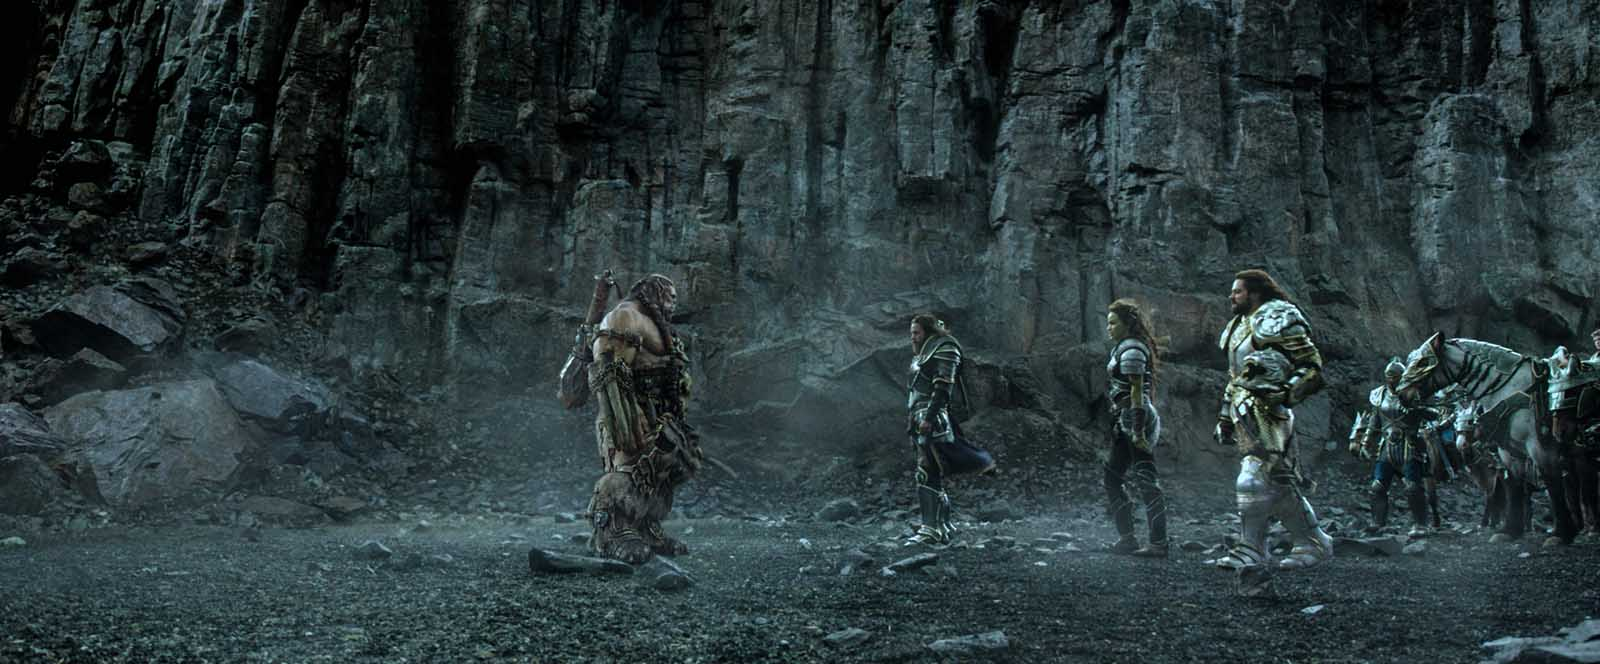 WARCRAFT MOVIE - Image 30 du film Duncan Jones 2016 - Go with the Blog